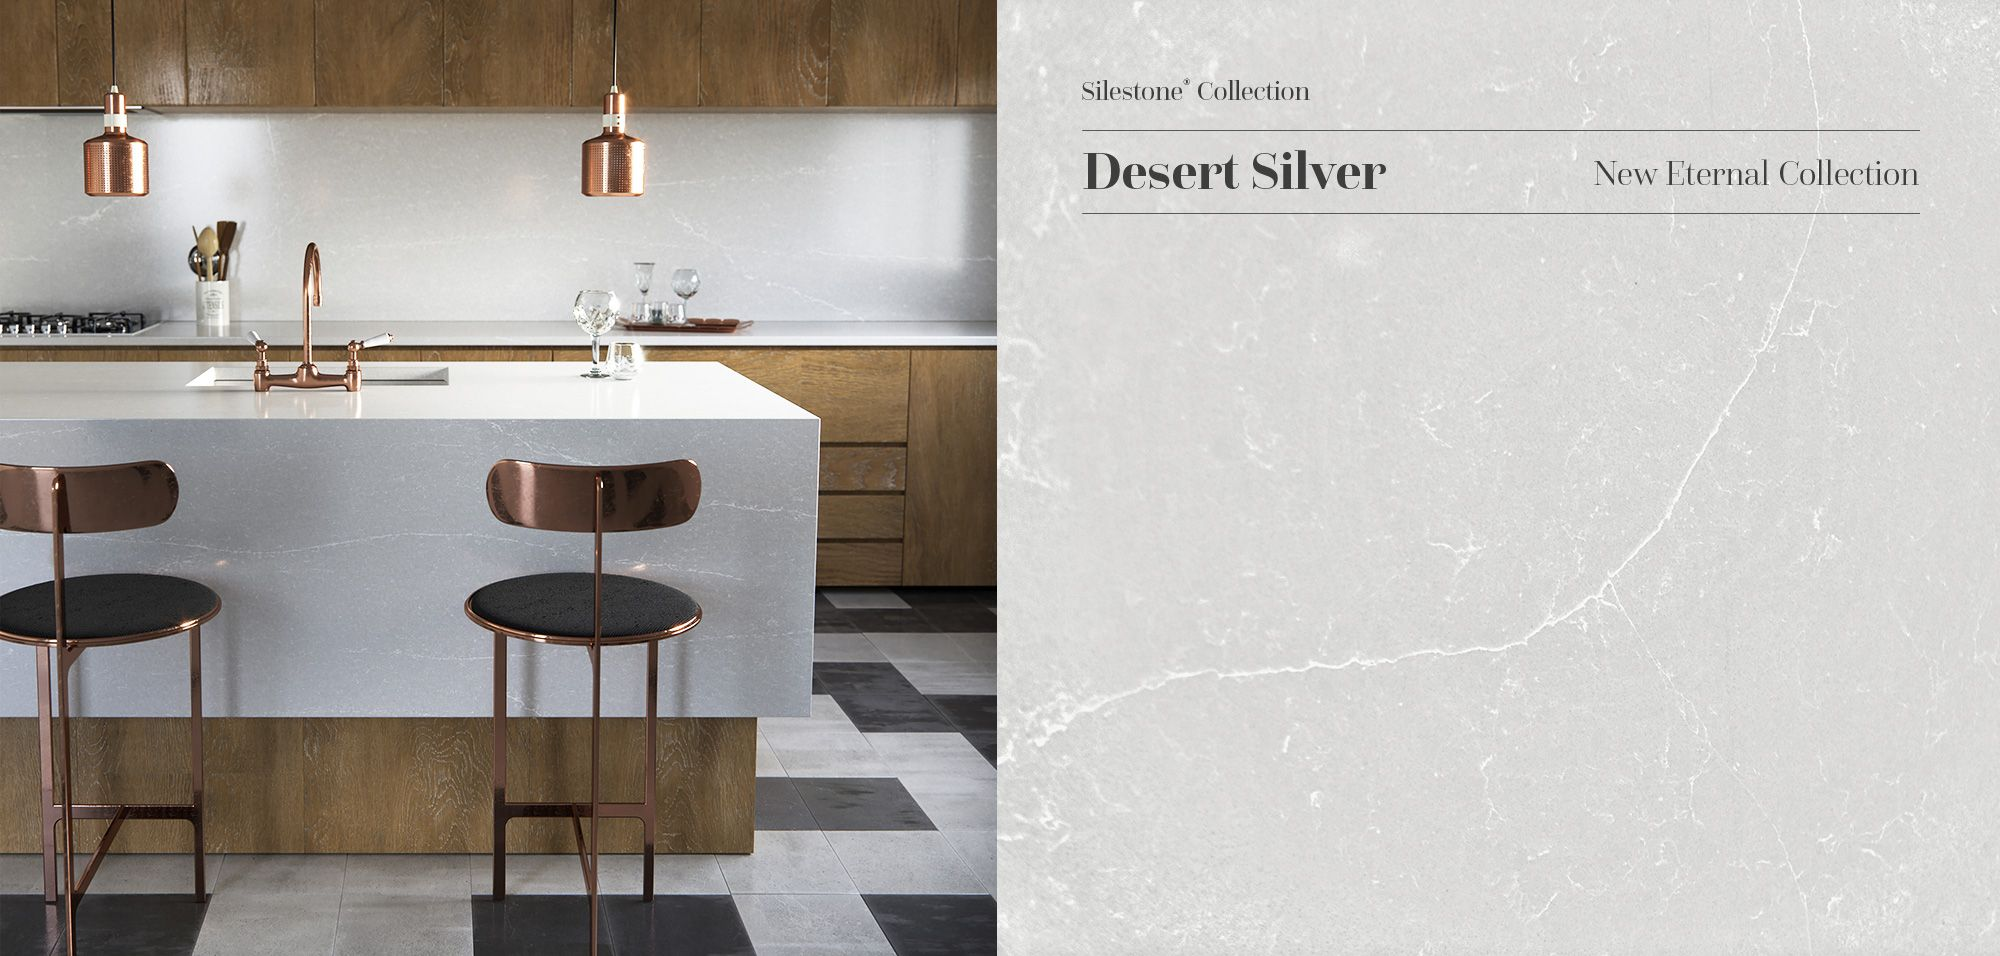 More monochromatic in its appearance, Silestone Desert Silver offers